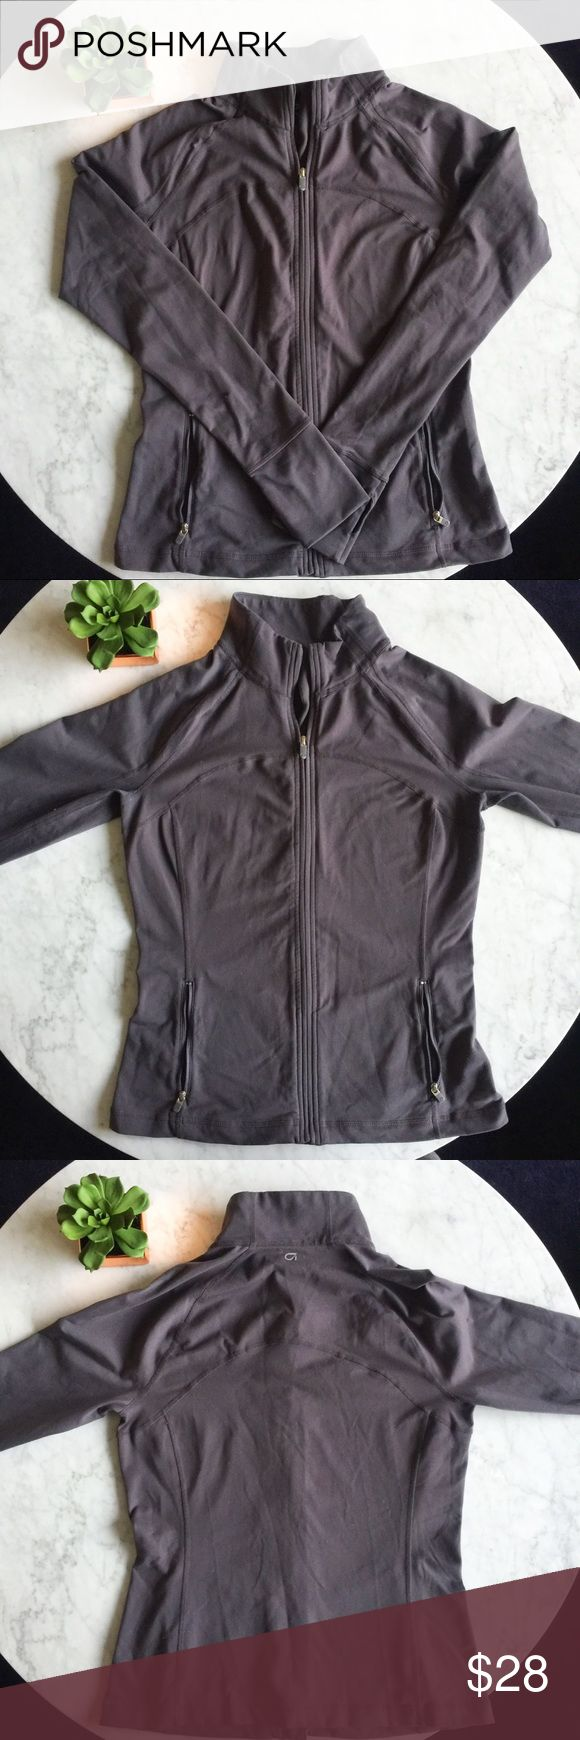 Gap Fit Workout Jacket In perfect condition. Runs true to size Gap Fit Tops Sweatshirts & Hoodies